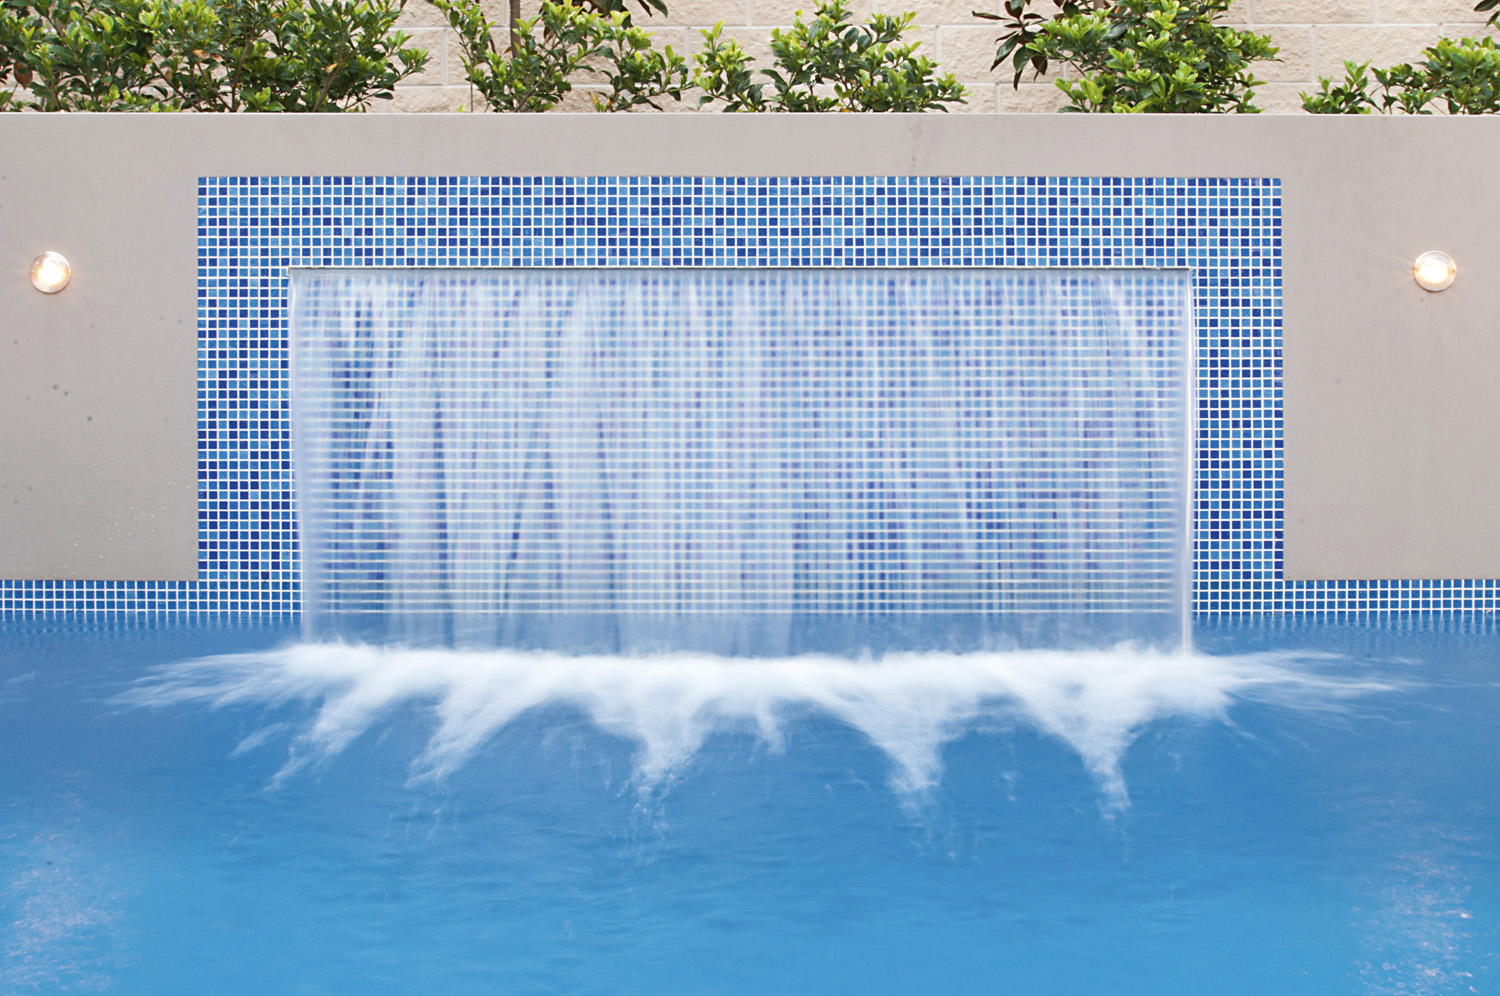 An outdoor/pool design with alfresco